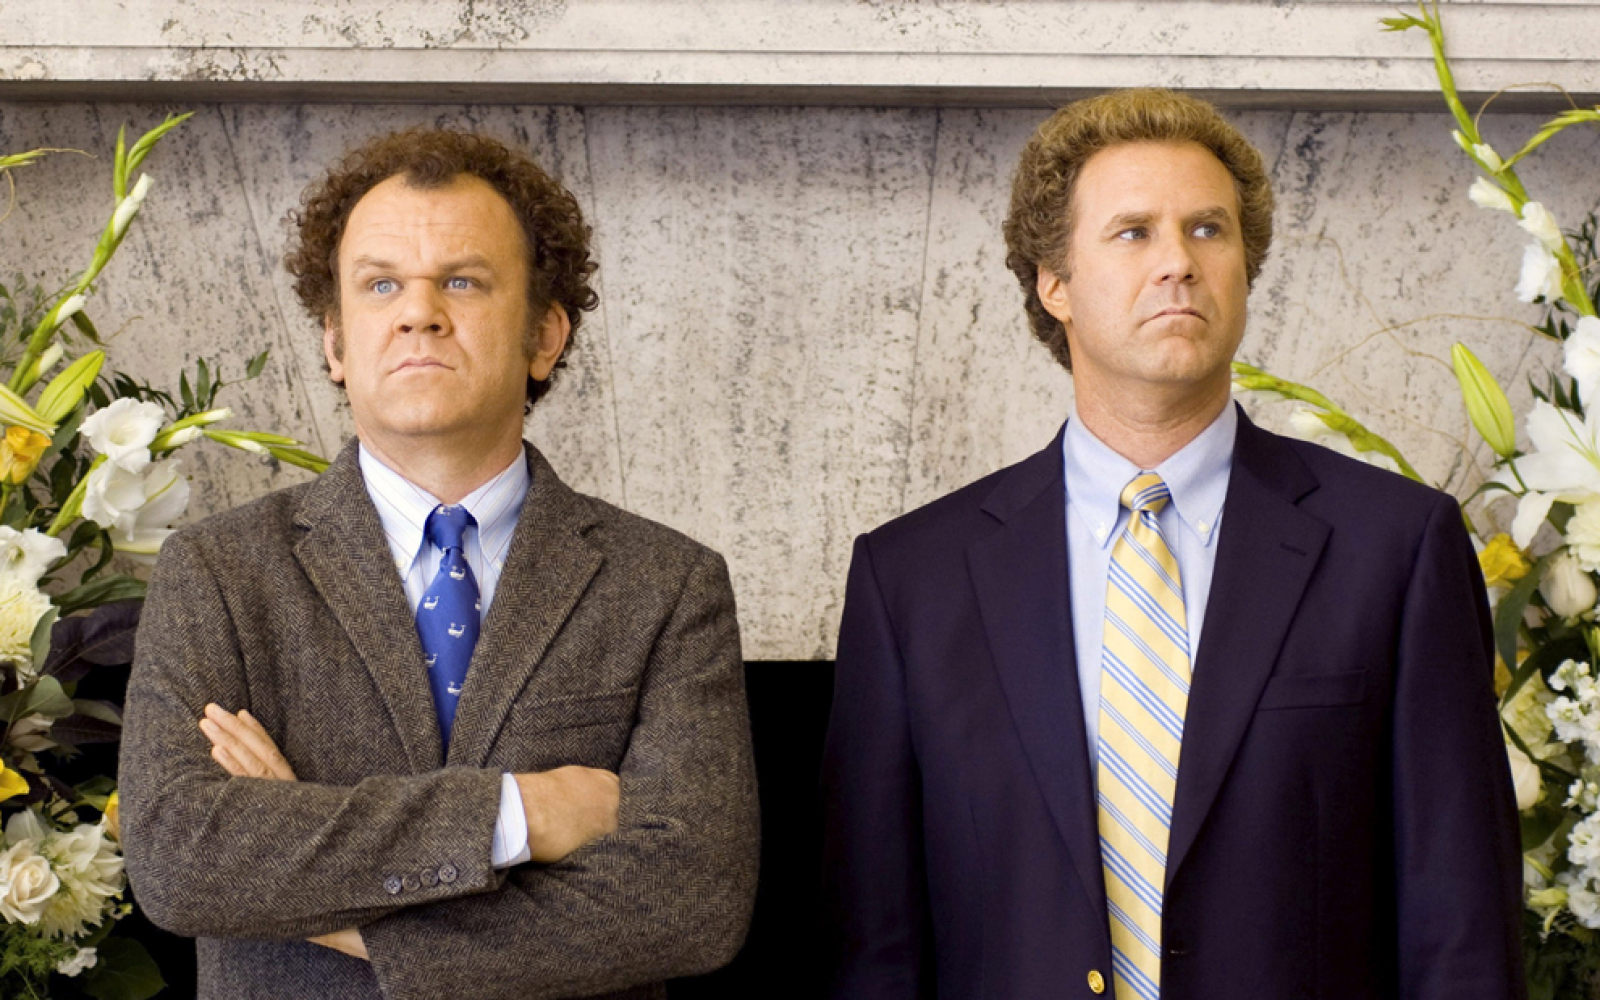 22 Of The Funniest Quotes From 'Step Brothers'